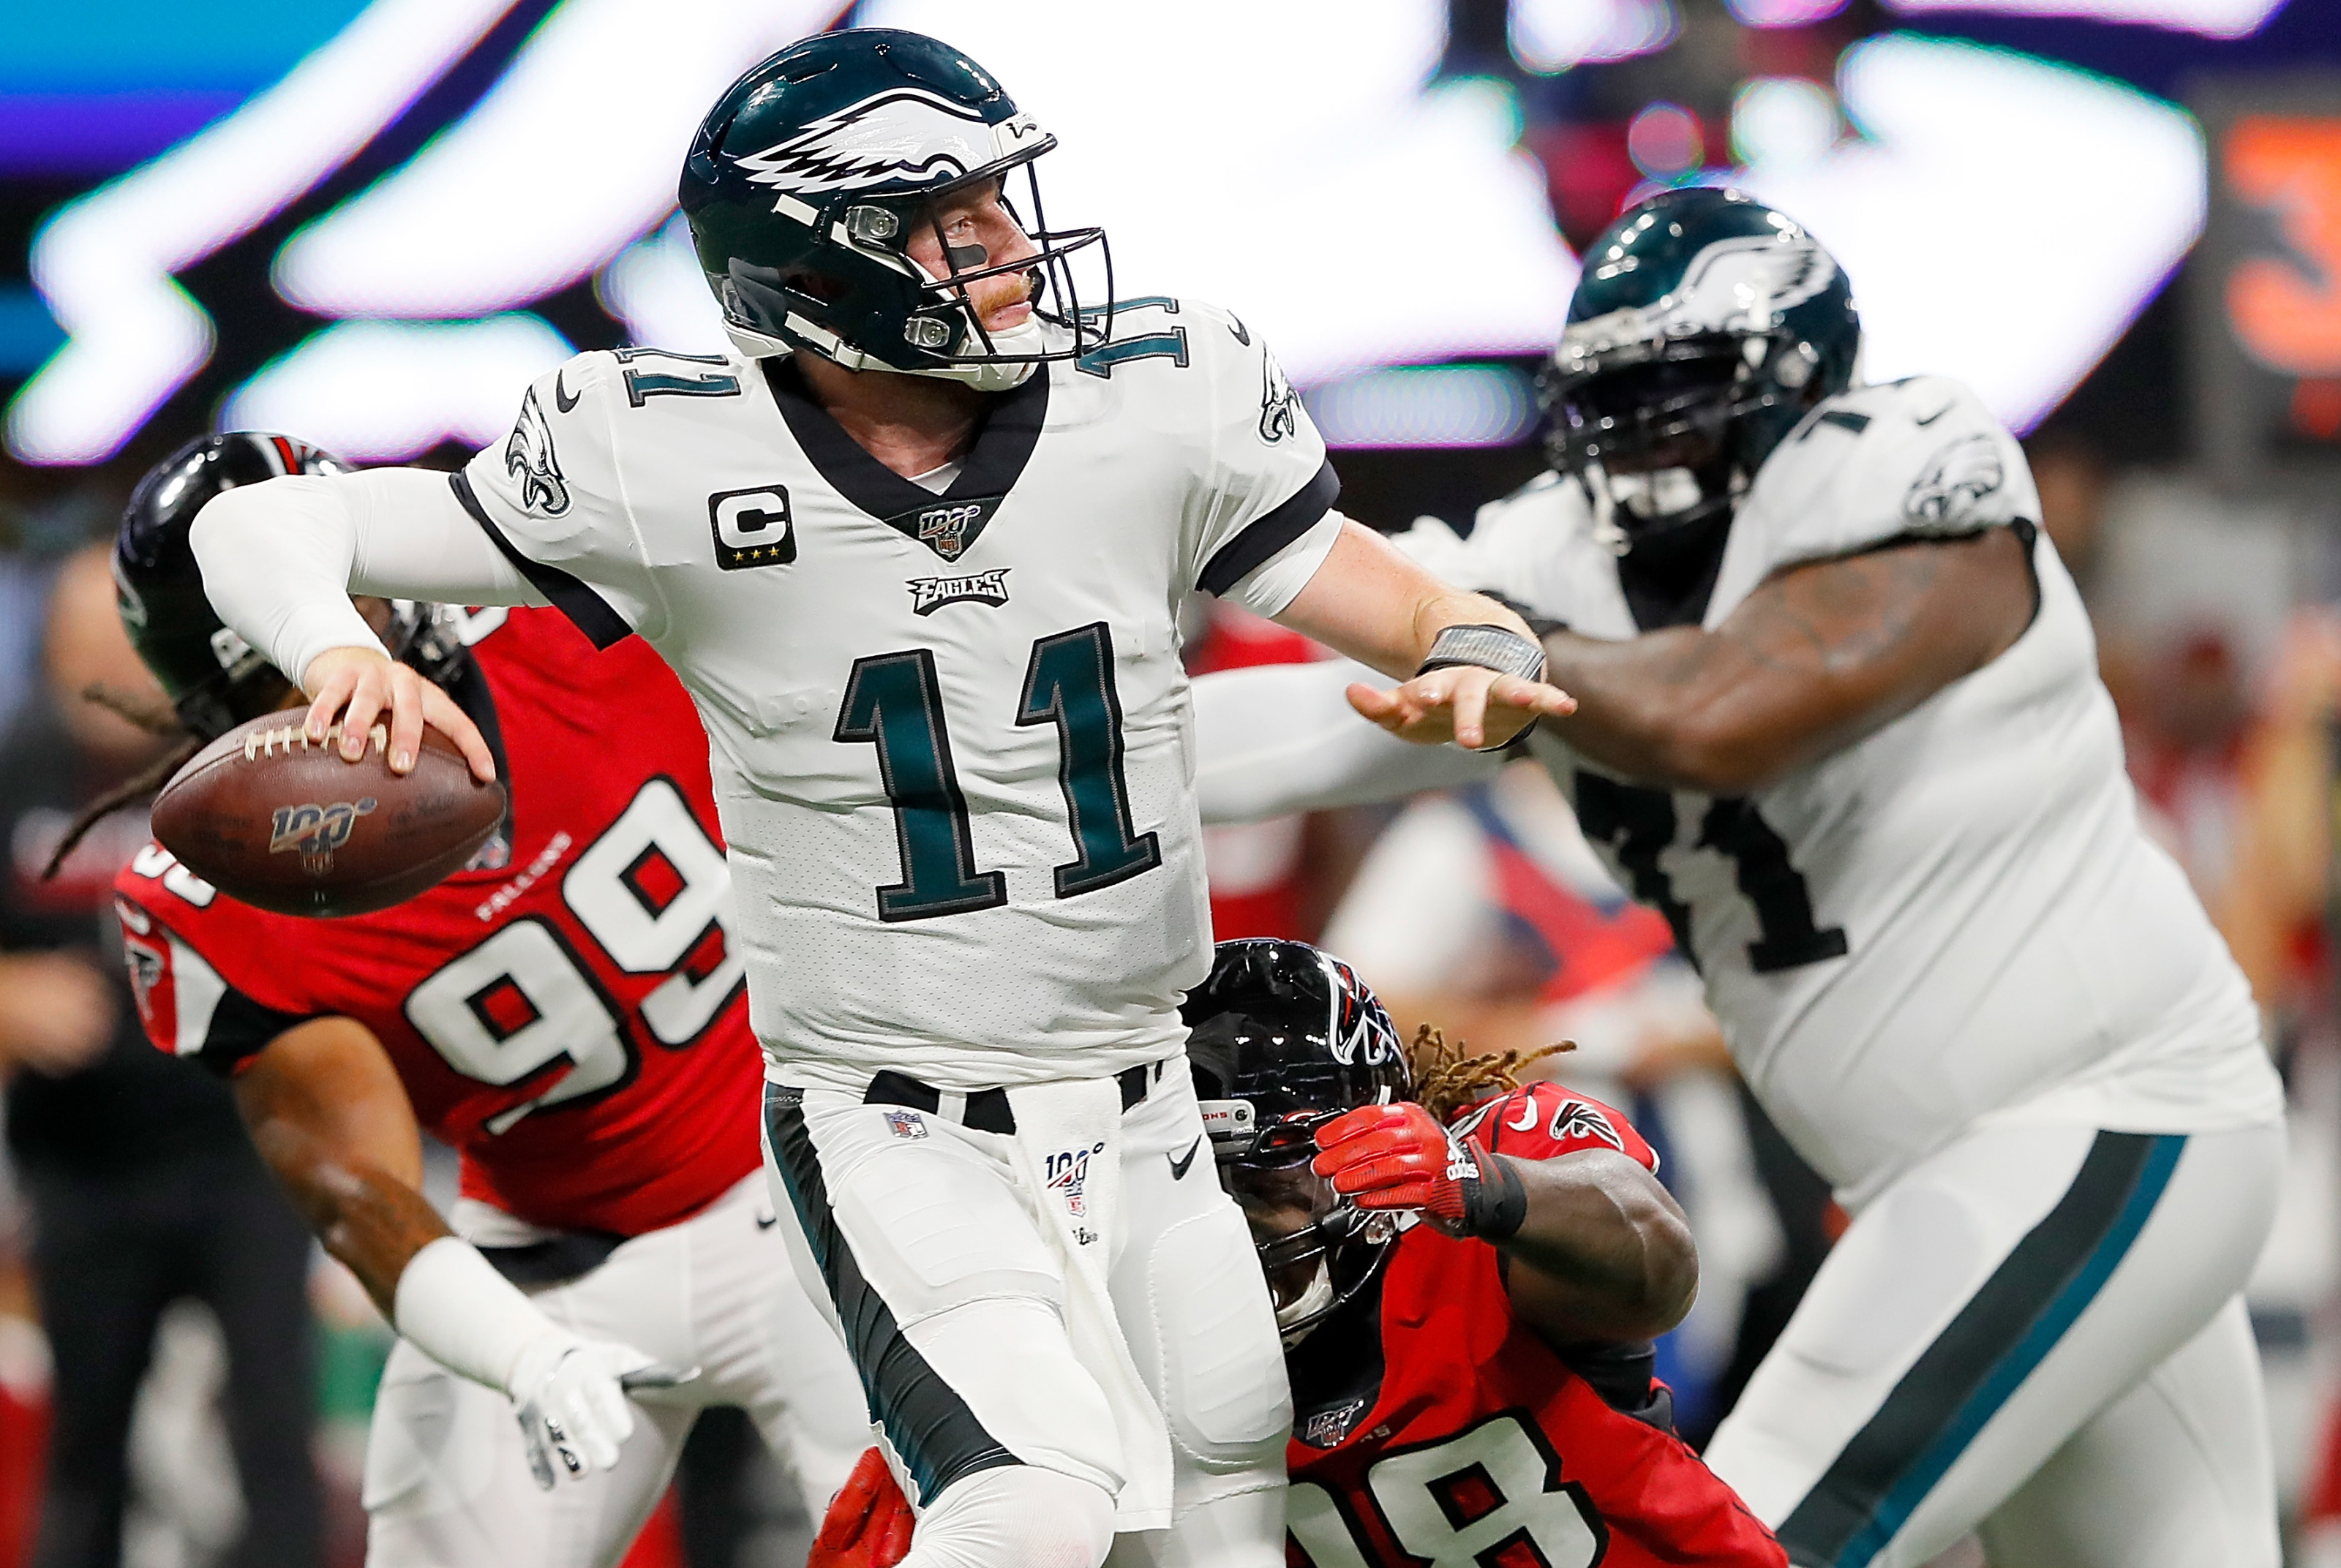 Carson Wentz Injured For Eagles Josh Mccown Comes In